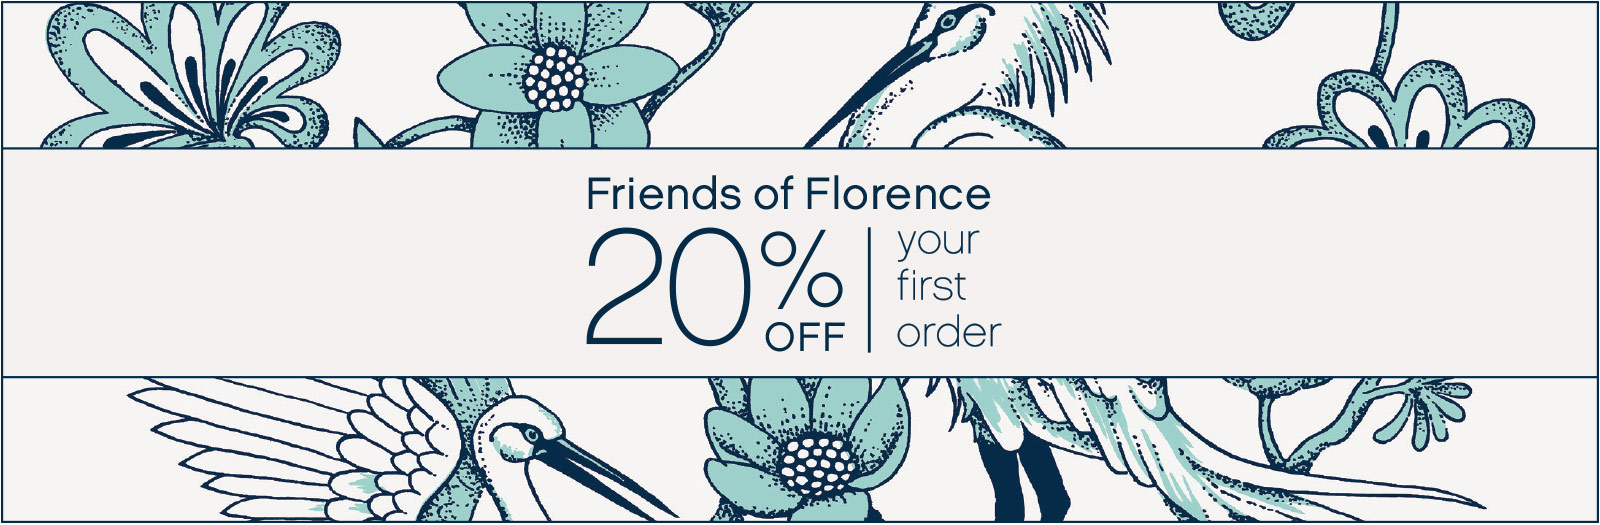 Friends of Florence